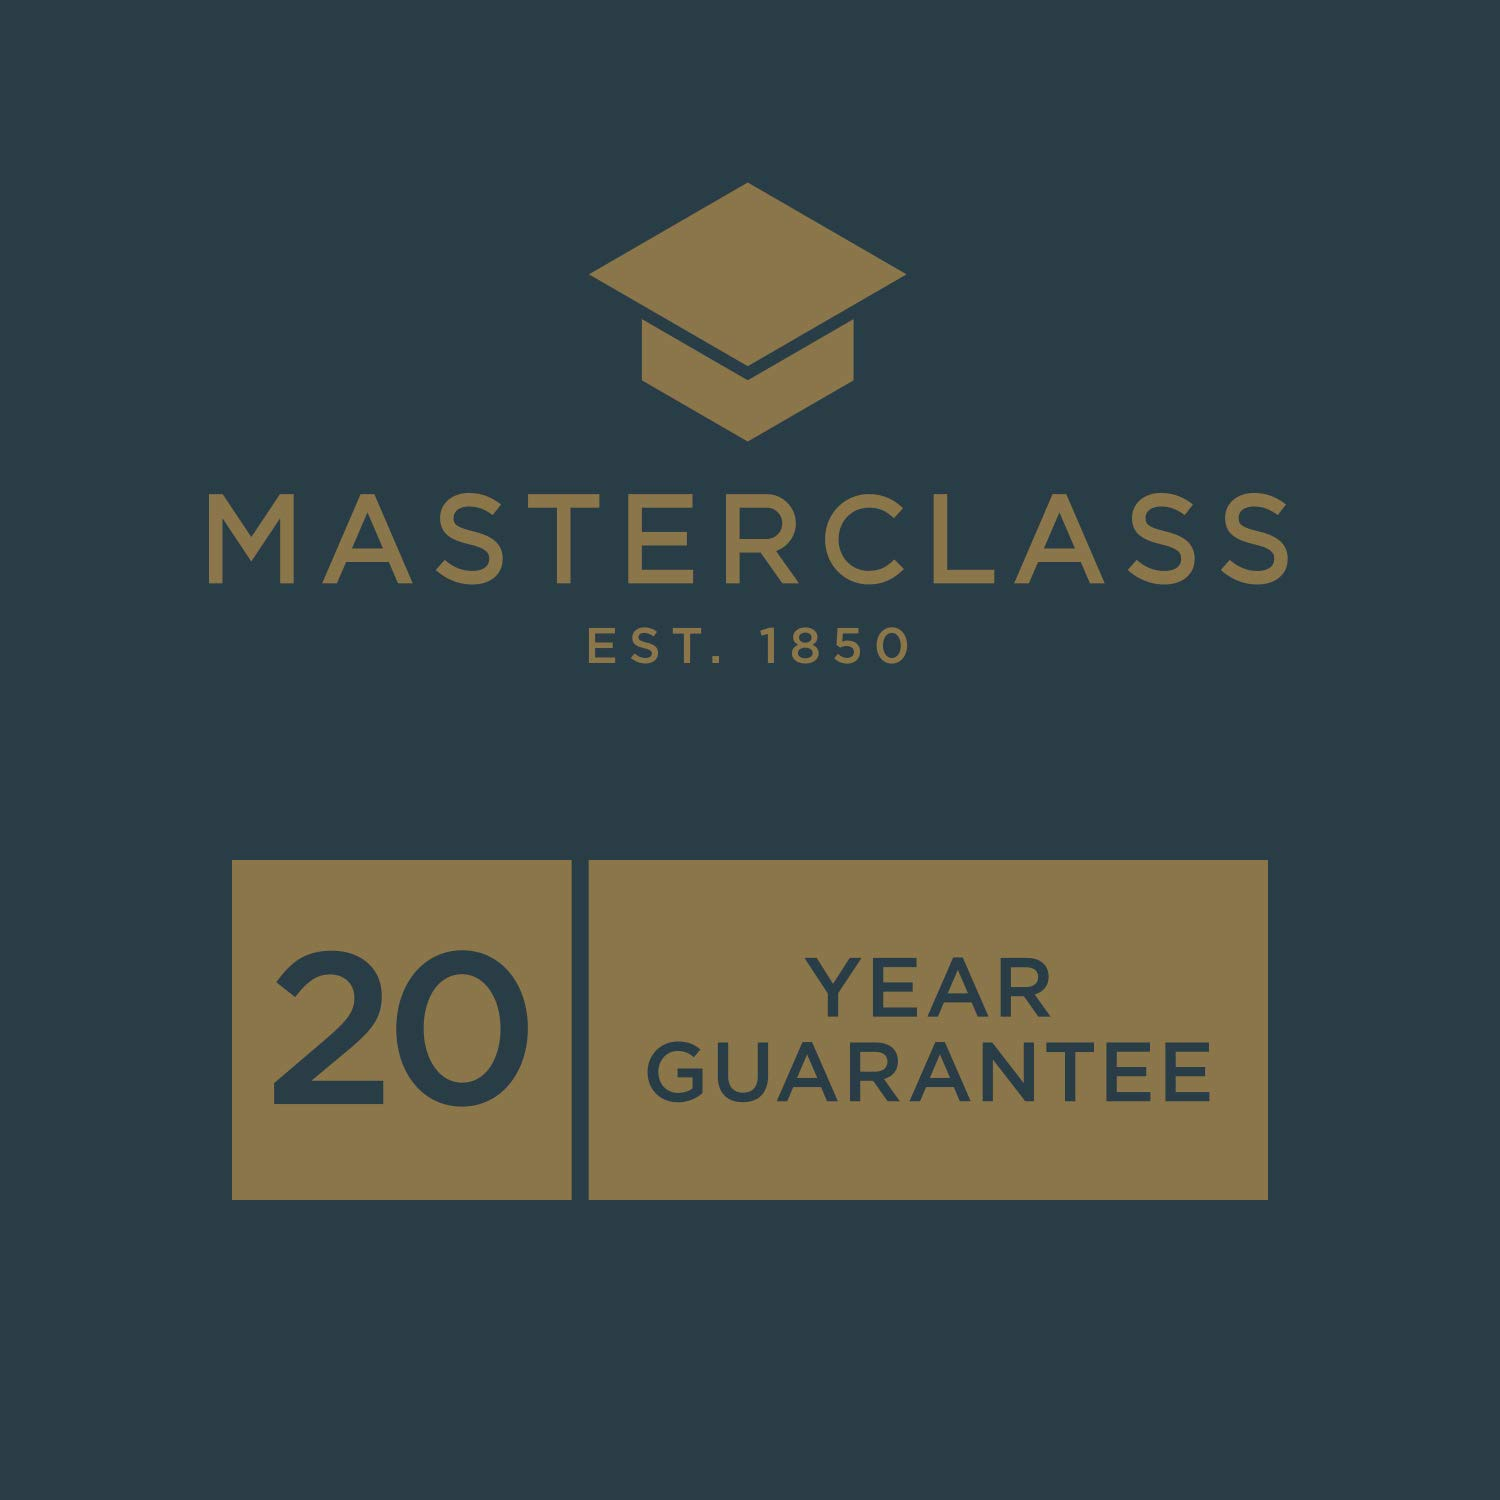 Amazon co uk: MasterClass